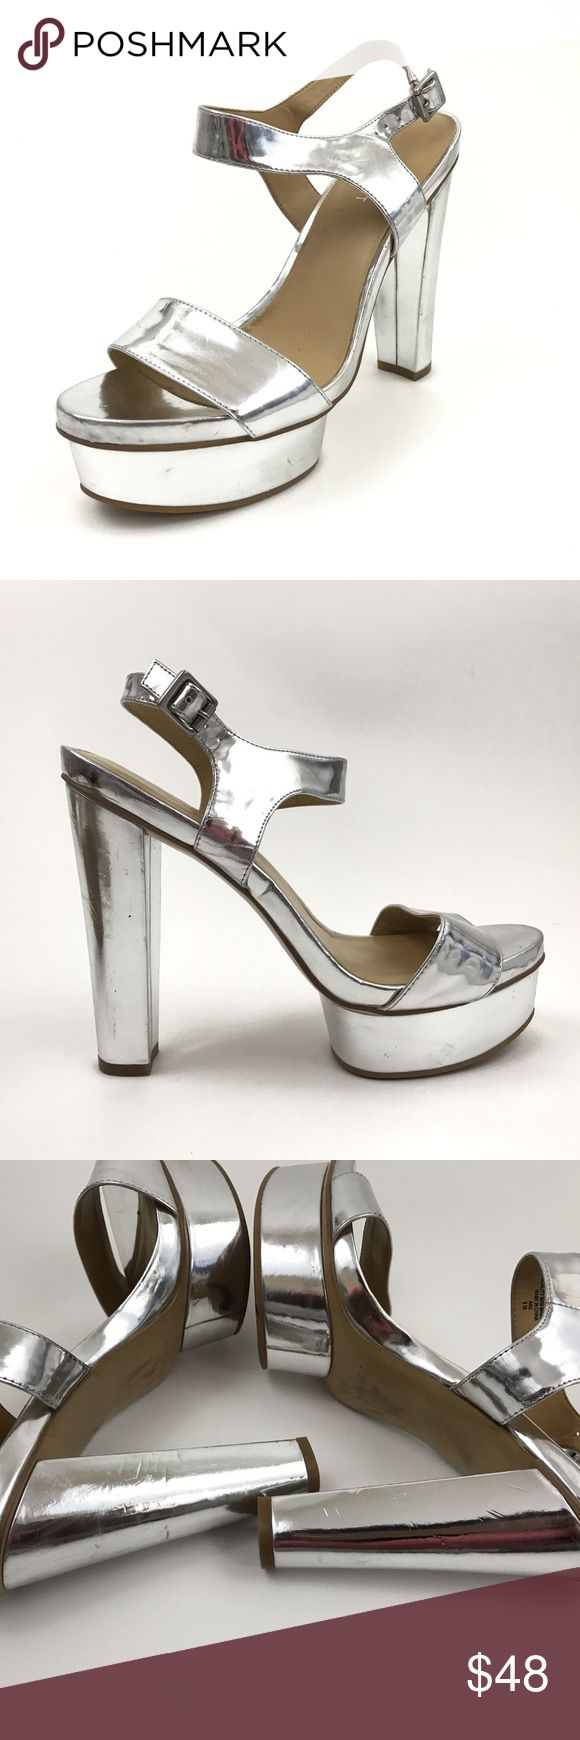 """Nine West Metallic Silver Platform High Heel Shoes Brand: Nine West  Tagged Size:8 M  Heel Height:5.5""""  Platform Height:1.5""""  Faux Leather Upper  Condition: Pre Owned Shoes, in Great Condition! No Holes, Stains or Fading. Has Some Scuffing- All Shown in Photos  Original Box/Dust Bag is Not Included  Item comes from a pet free/smoke free clean environment  please contact me for any additional questions  I offer combined shipping Nine West Shoes Platforms"""